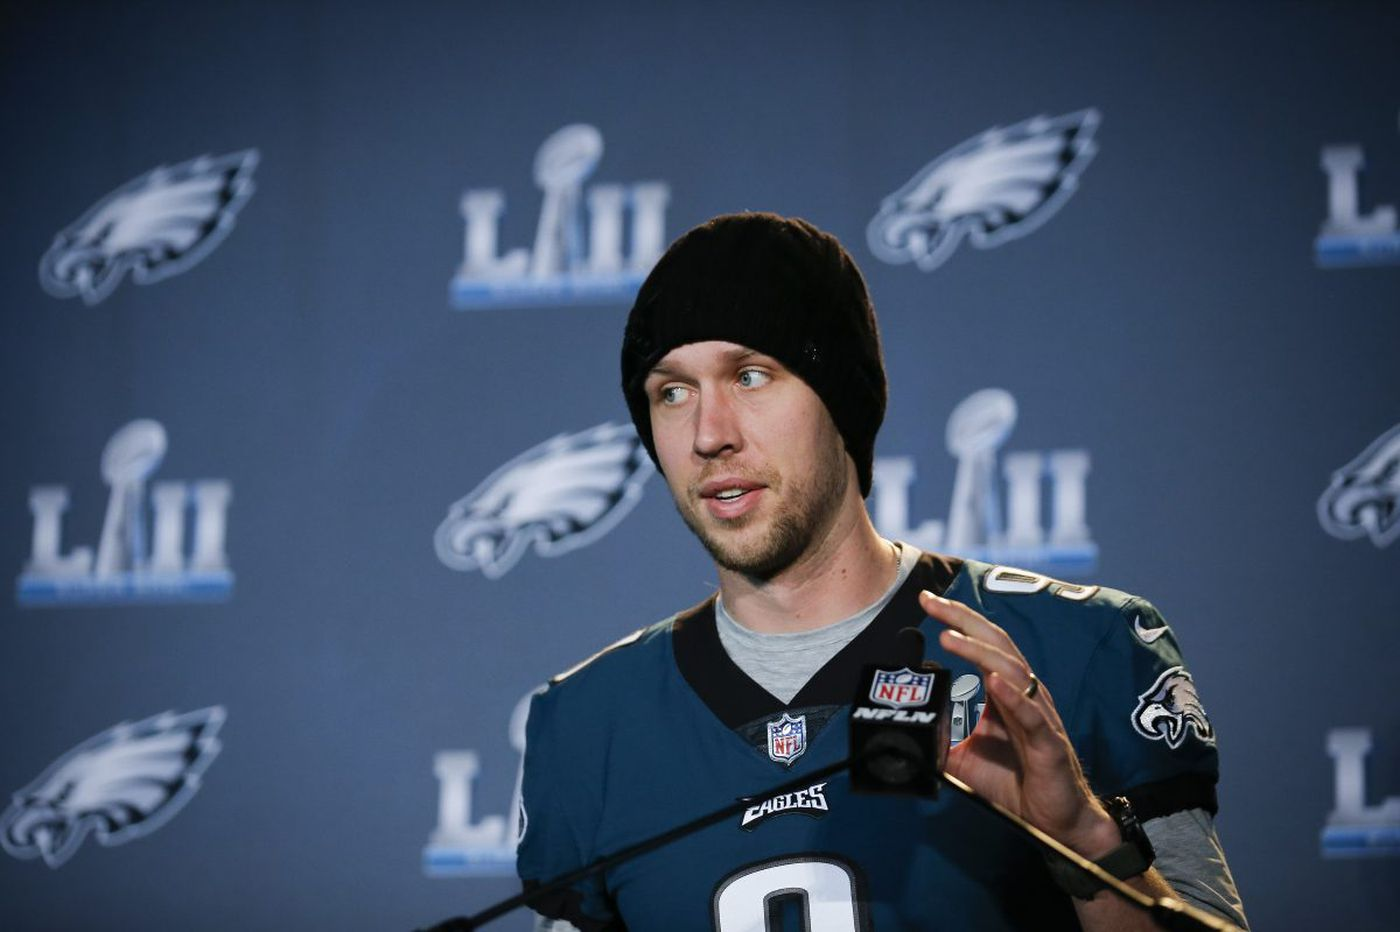 Eagles' Nick Foles is trying to live in the moment. That moment will soon be the Super Bowl